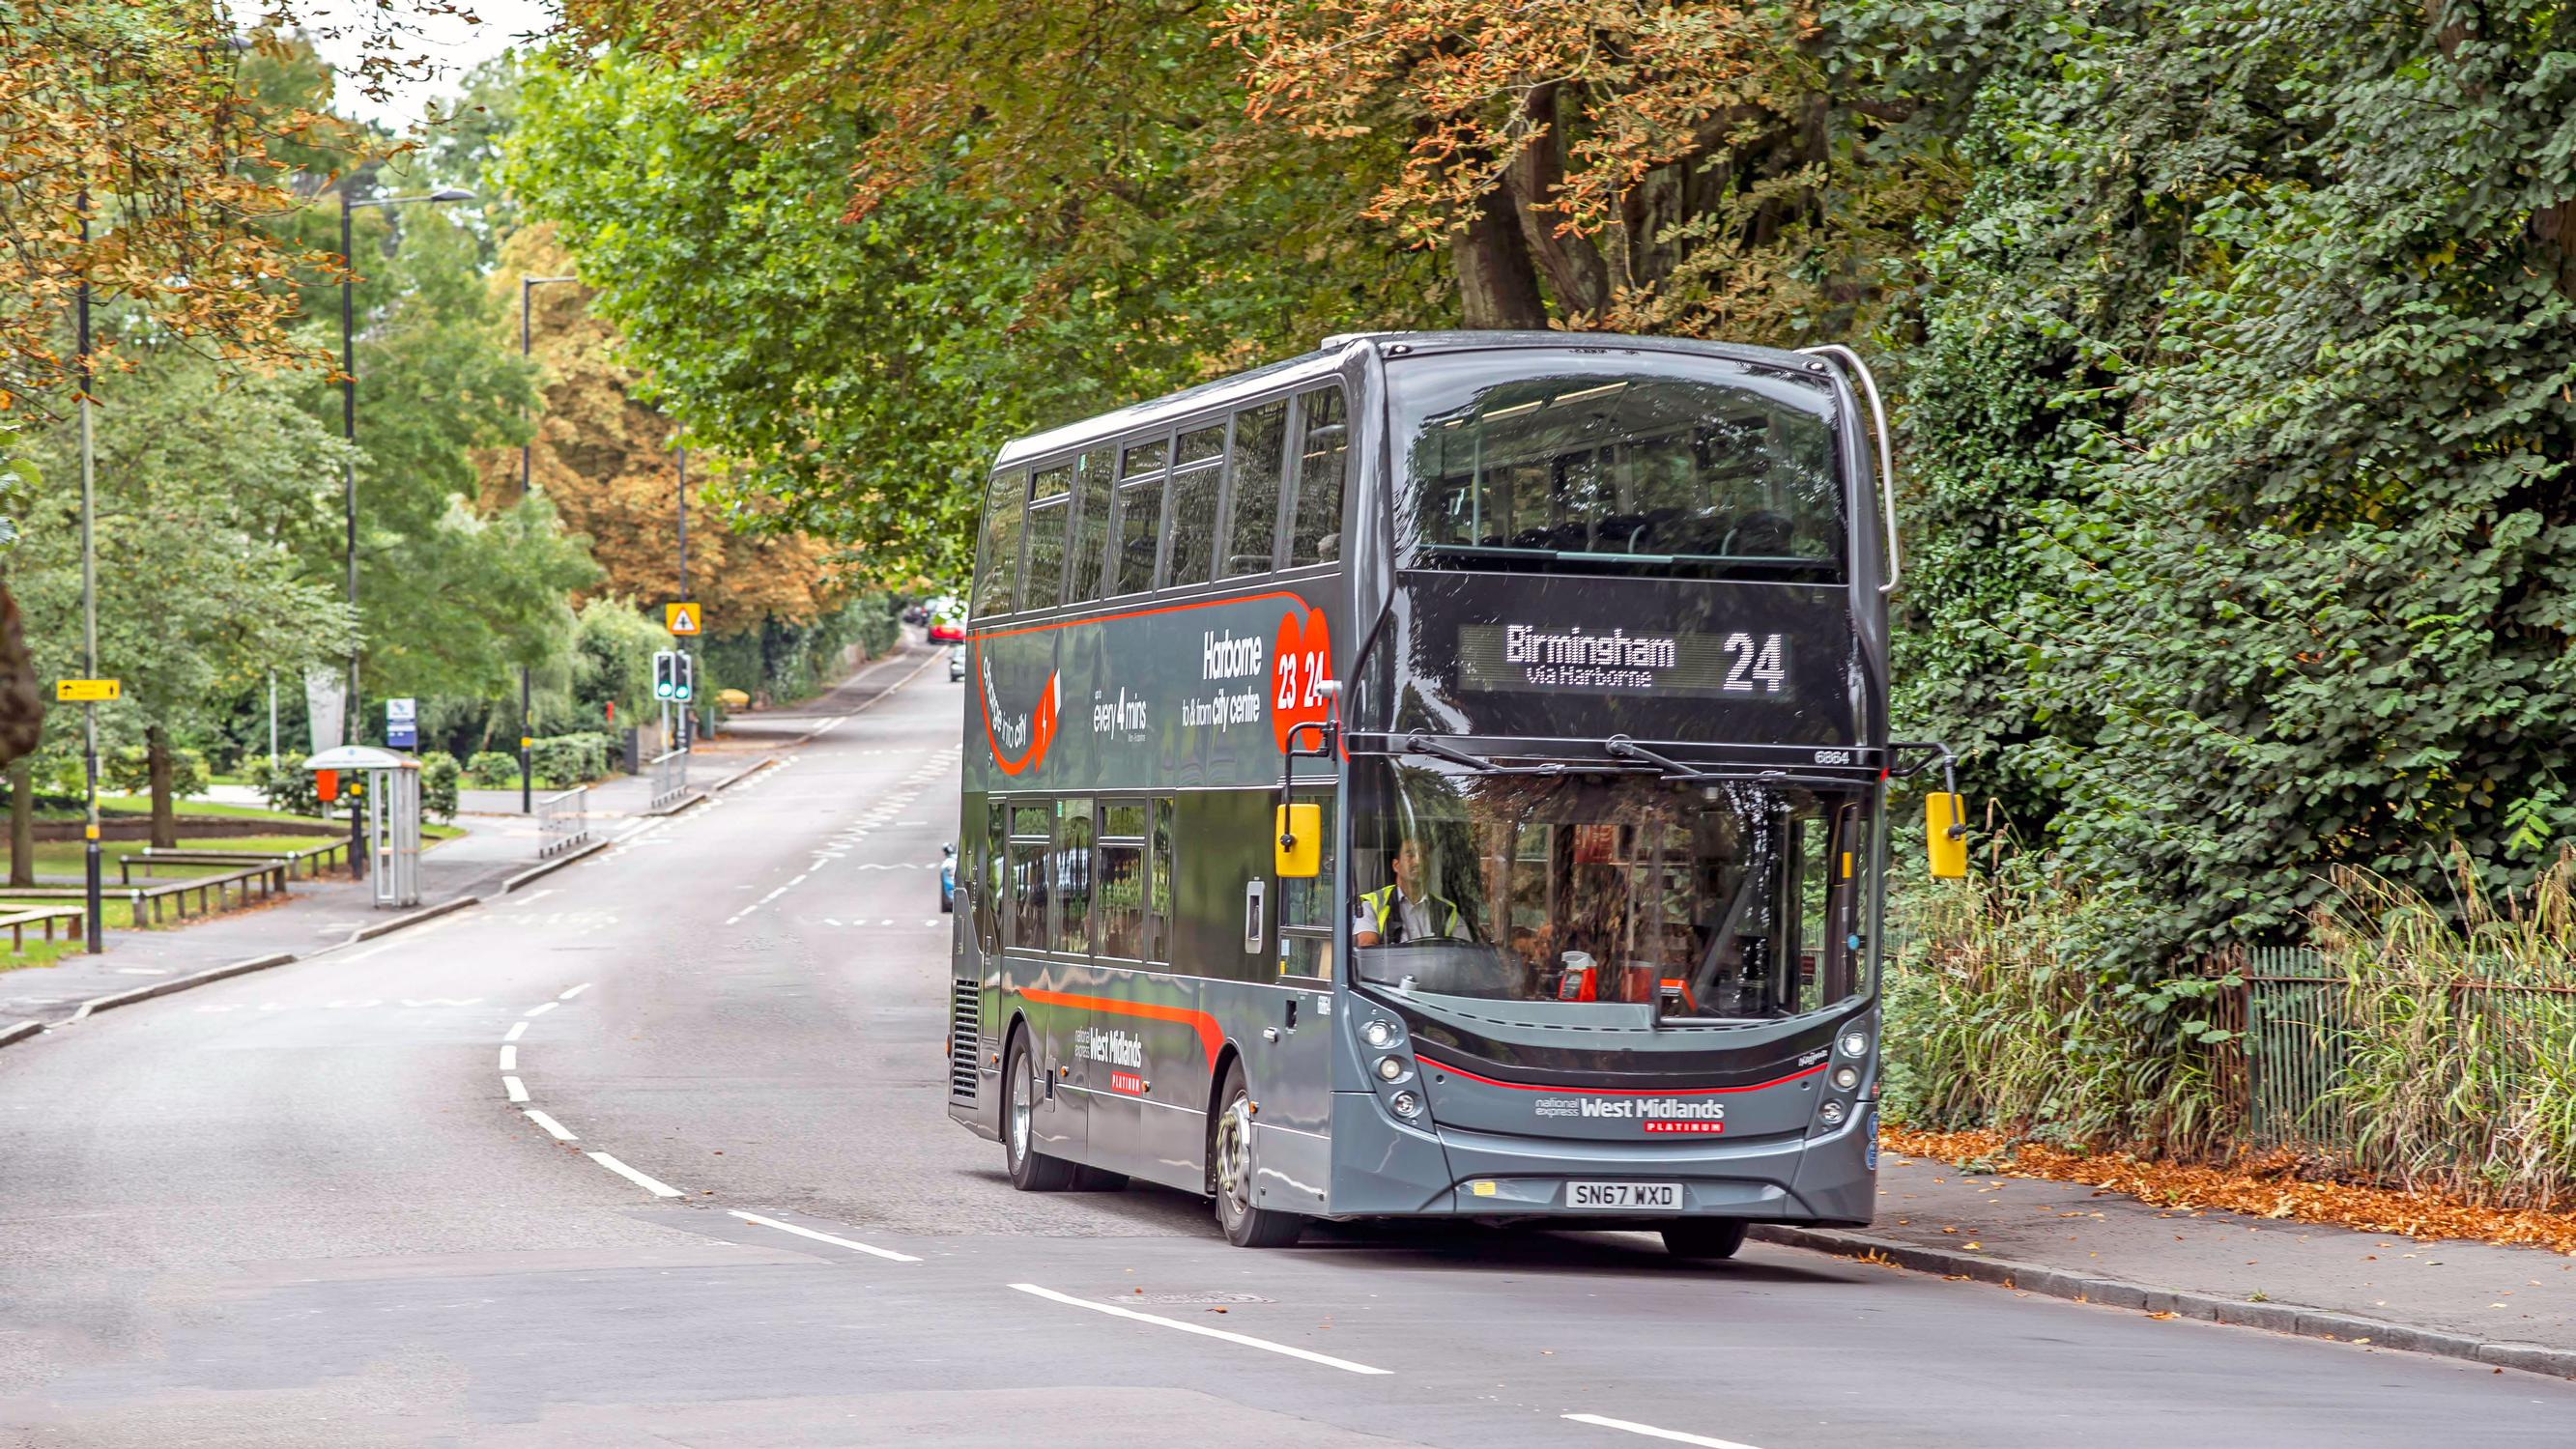 Bus services in West Midlands to get £20m boost